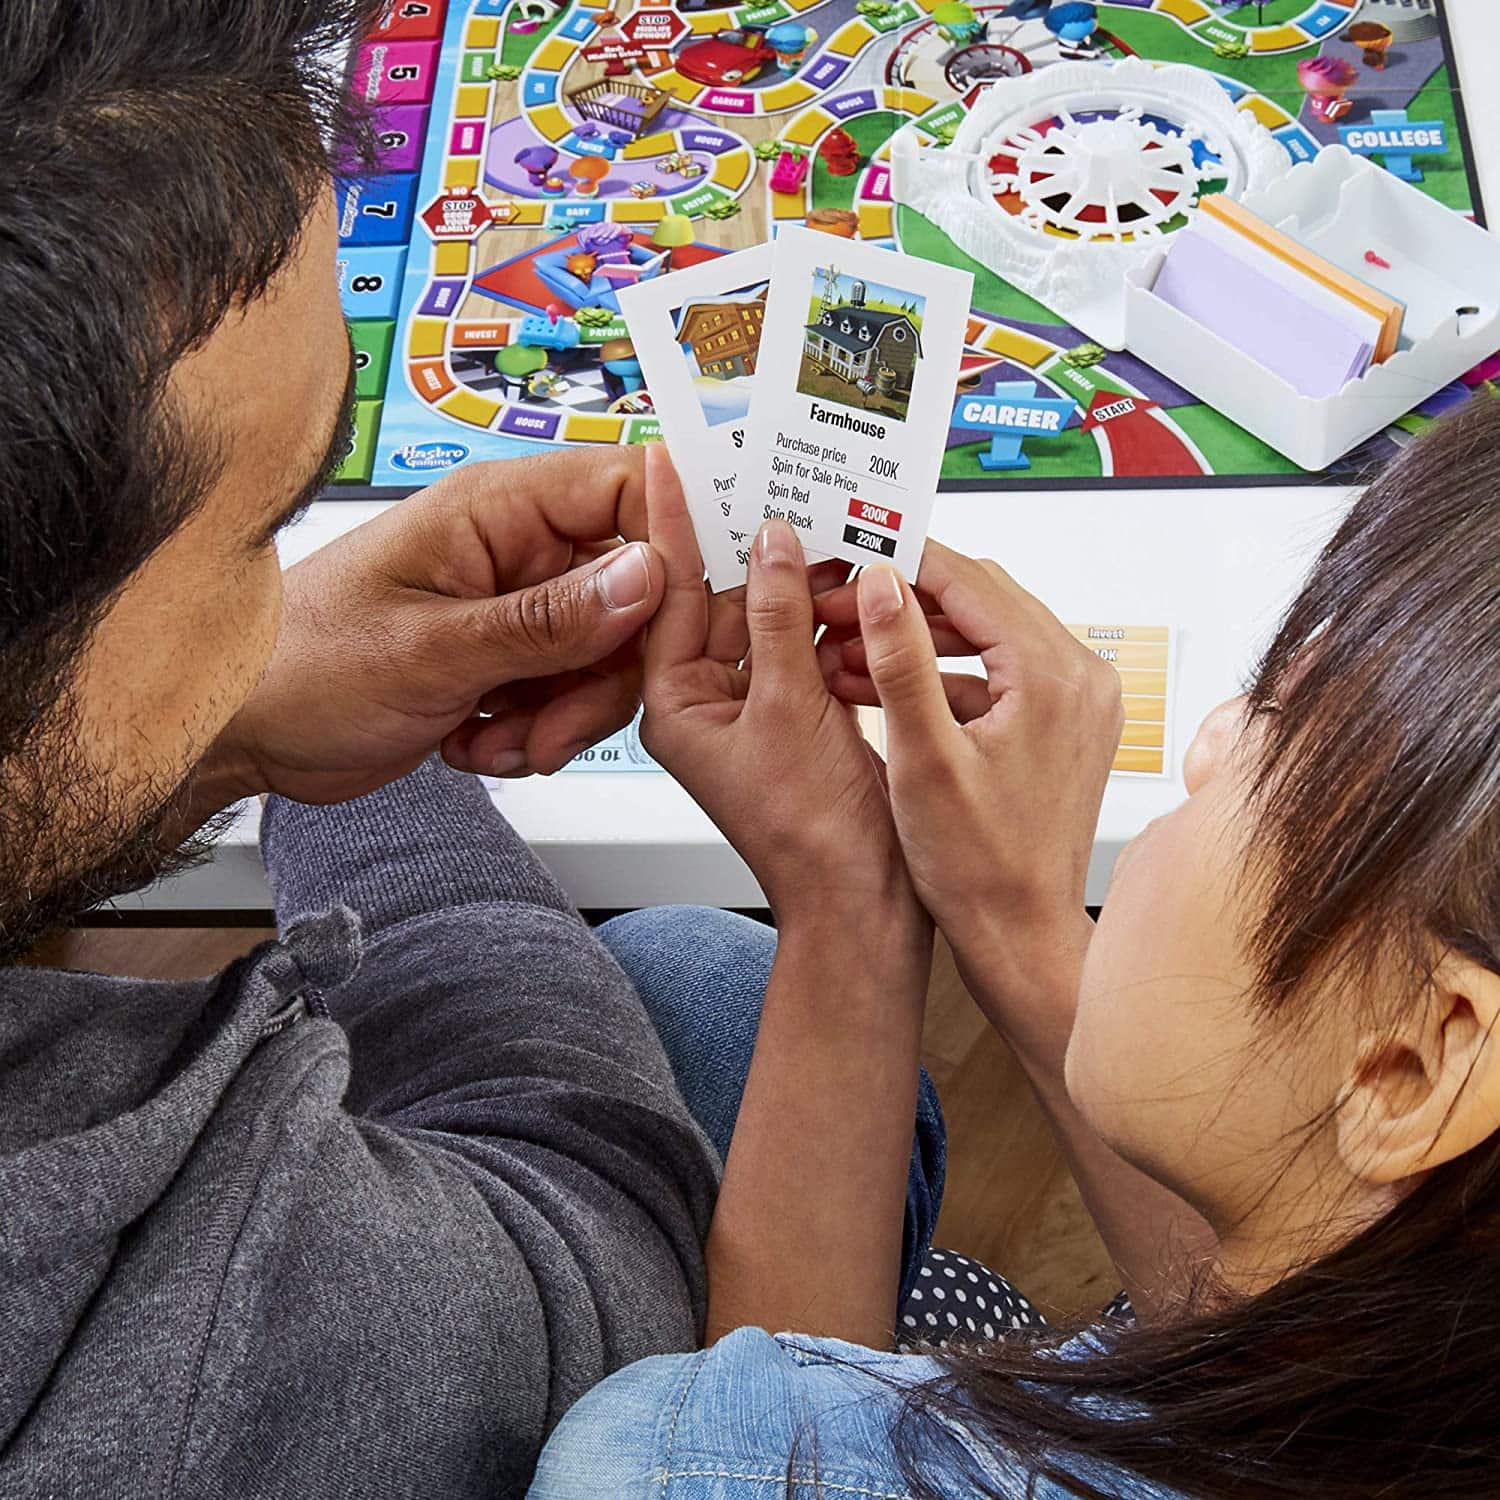 Game of Life 2021 'Your Life Your Way' Total Product Offering with game board, money, cards, and spinner, in a lifestyle photoshoot with 2 people. Made by Hasbro Gaming